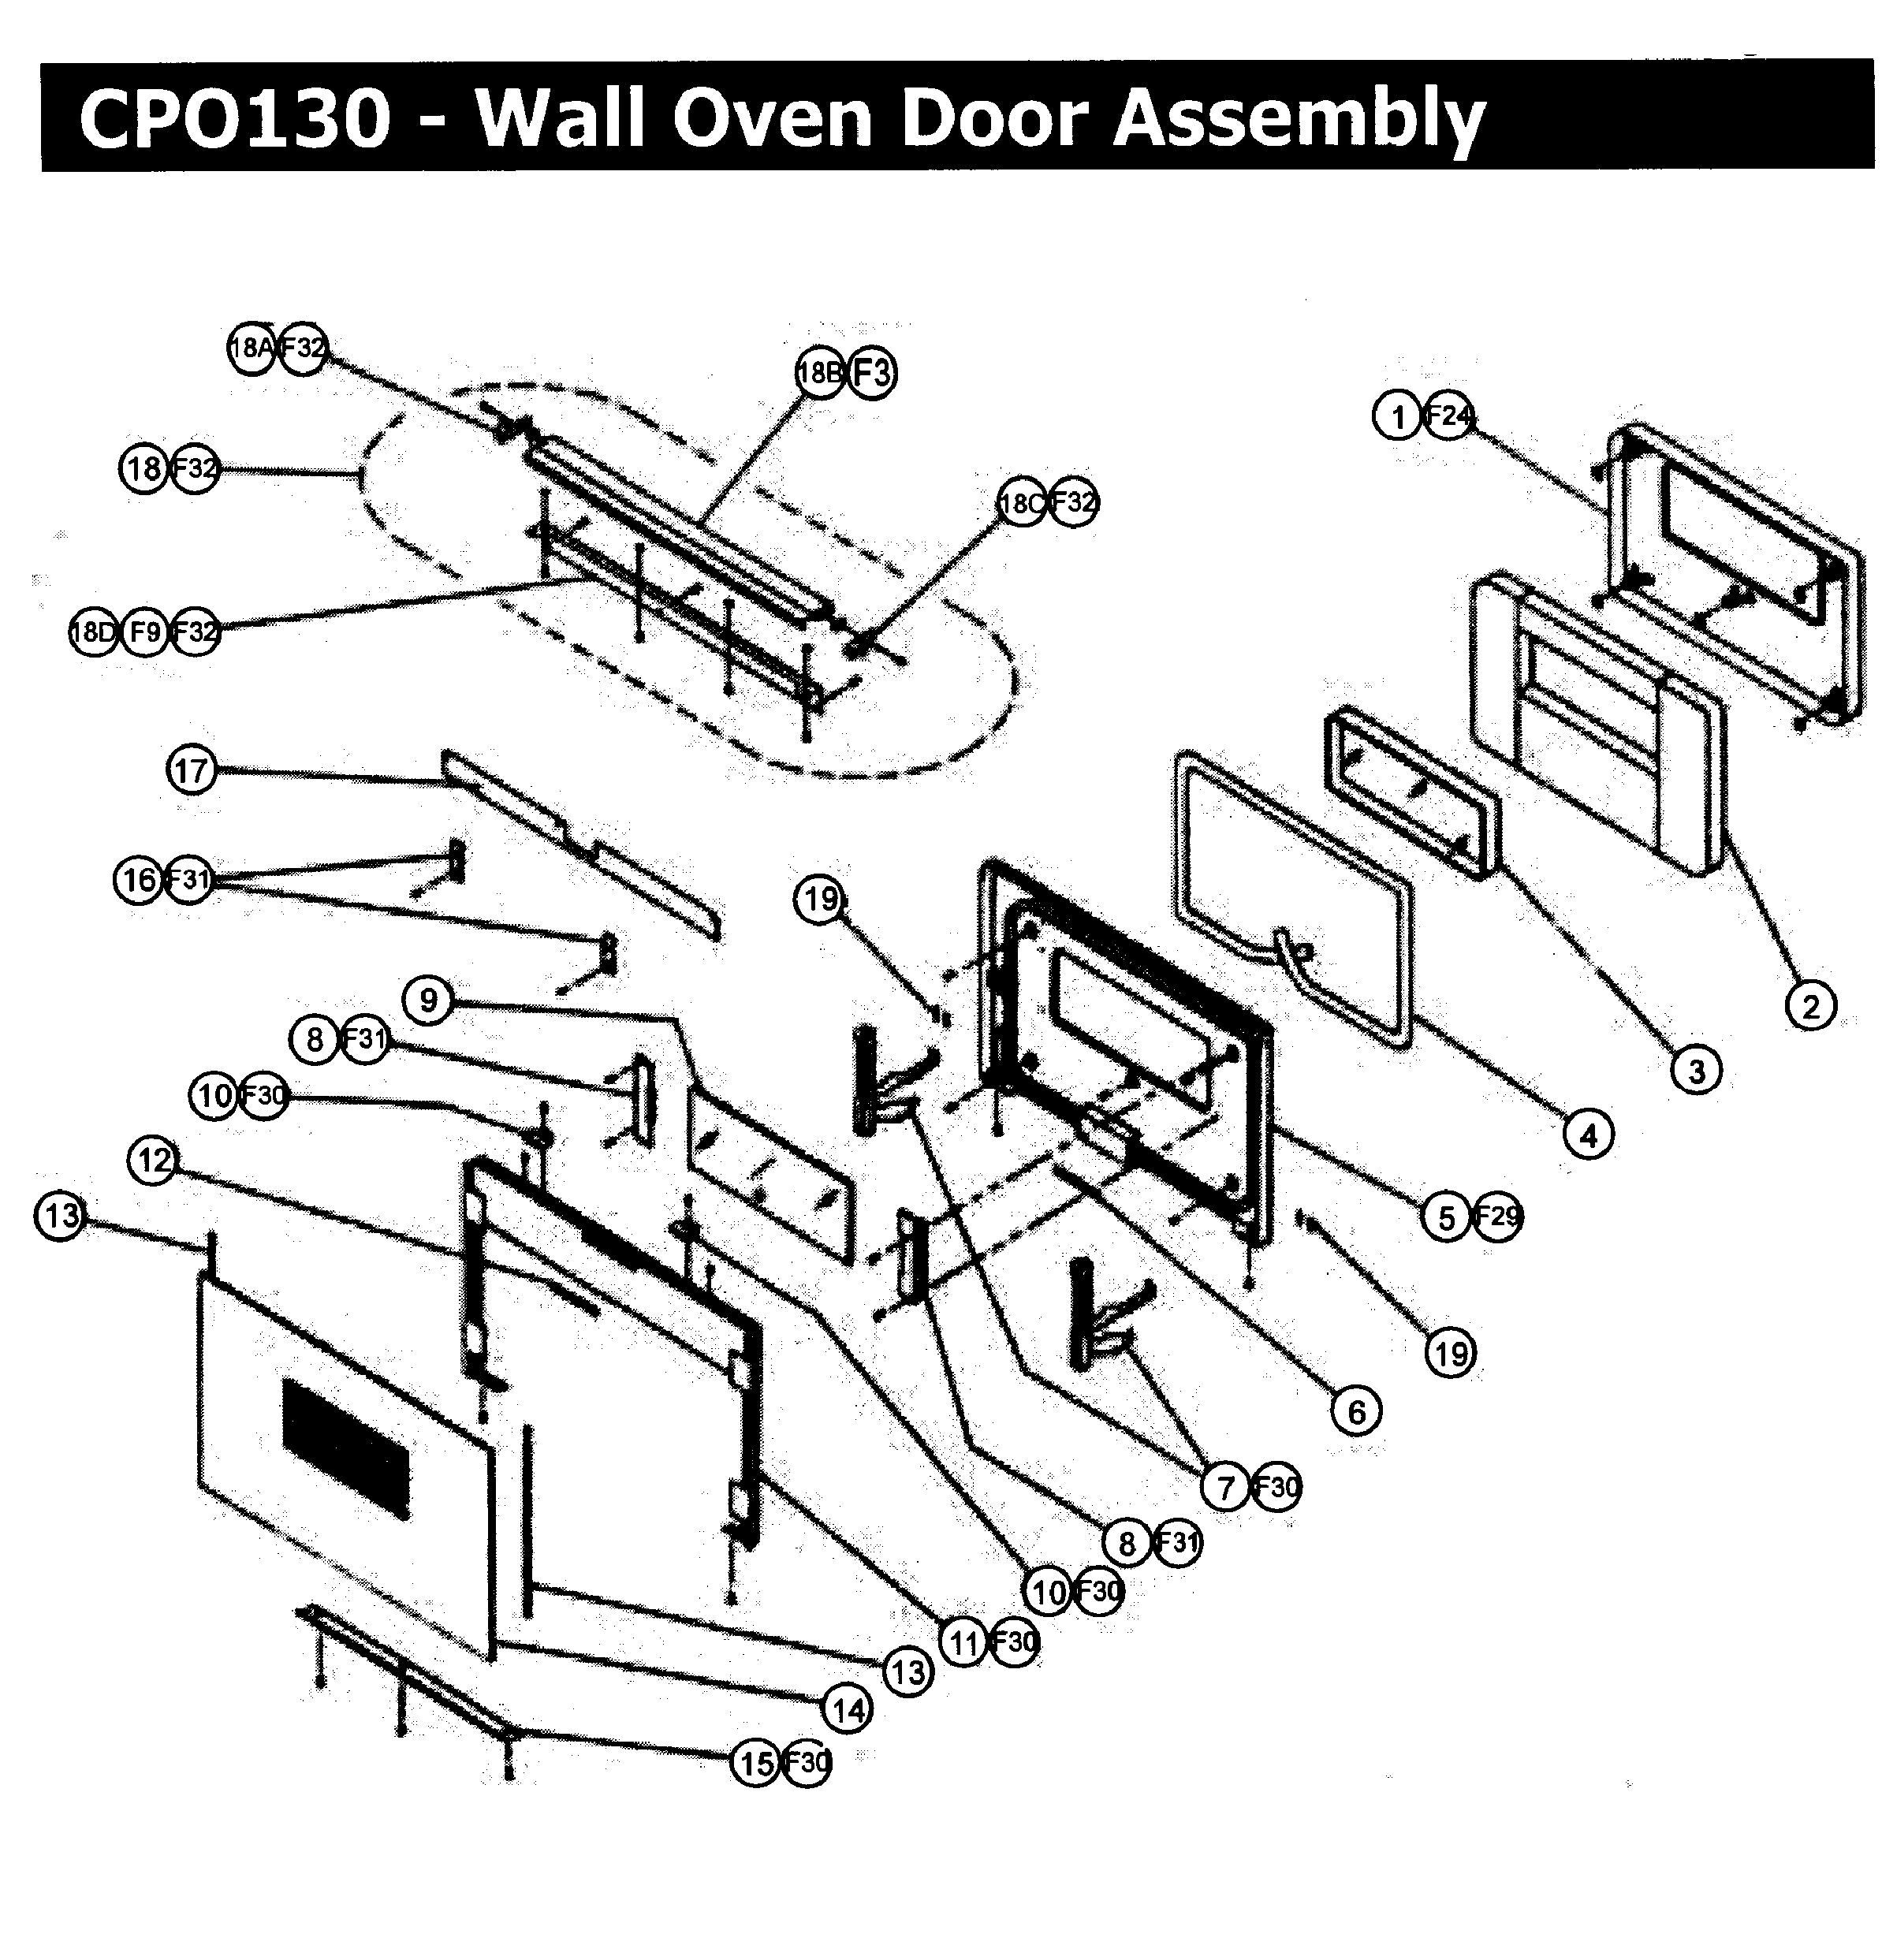 Dacor cpo130 wall oven timer stove clocks and appliance timers rh appliancetimers dacor double oven wiring diagram dacor wall oven wiring diagram